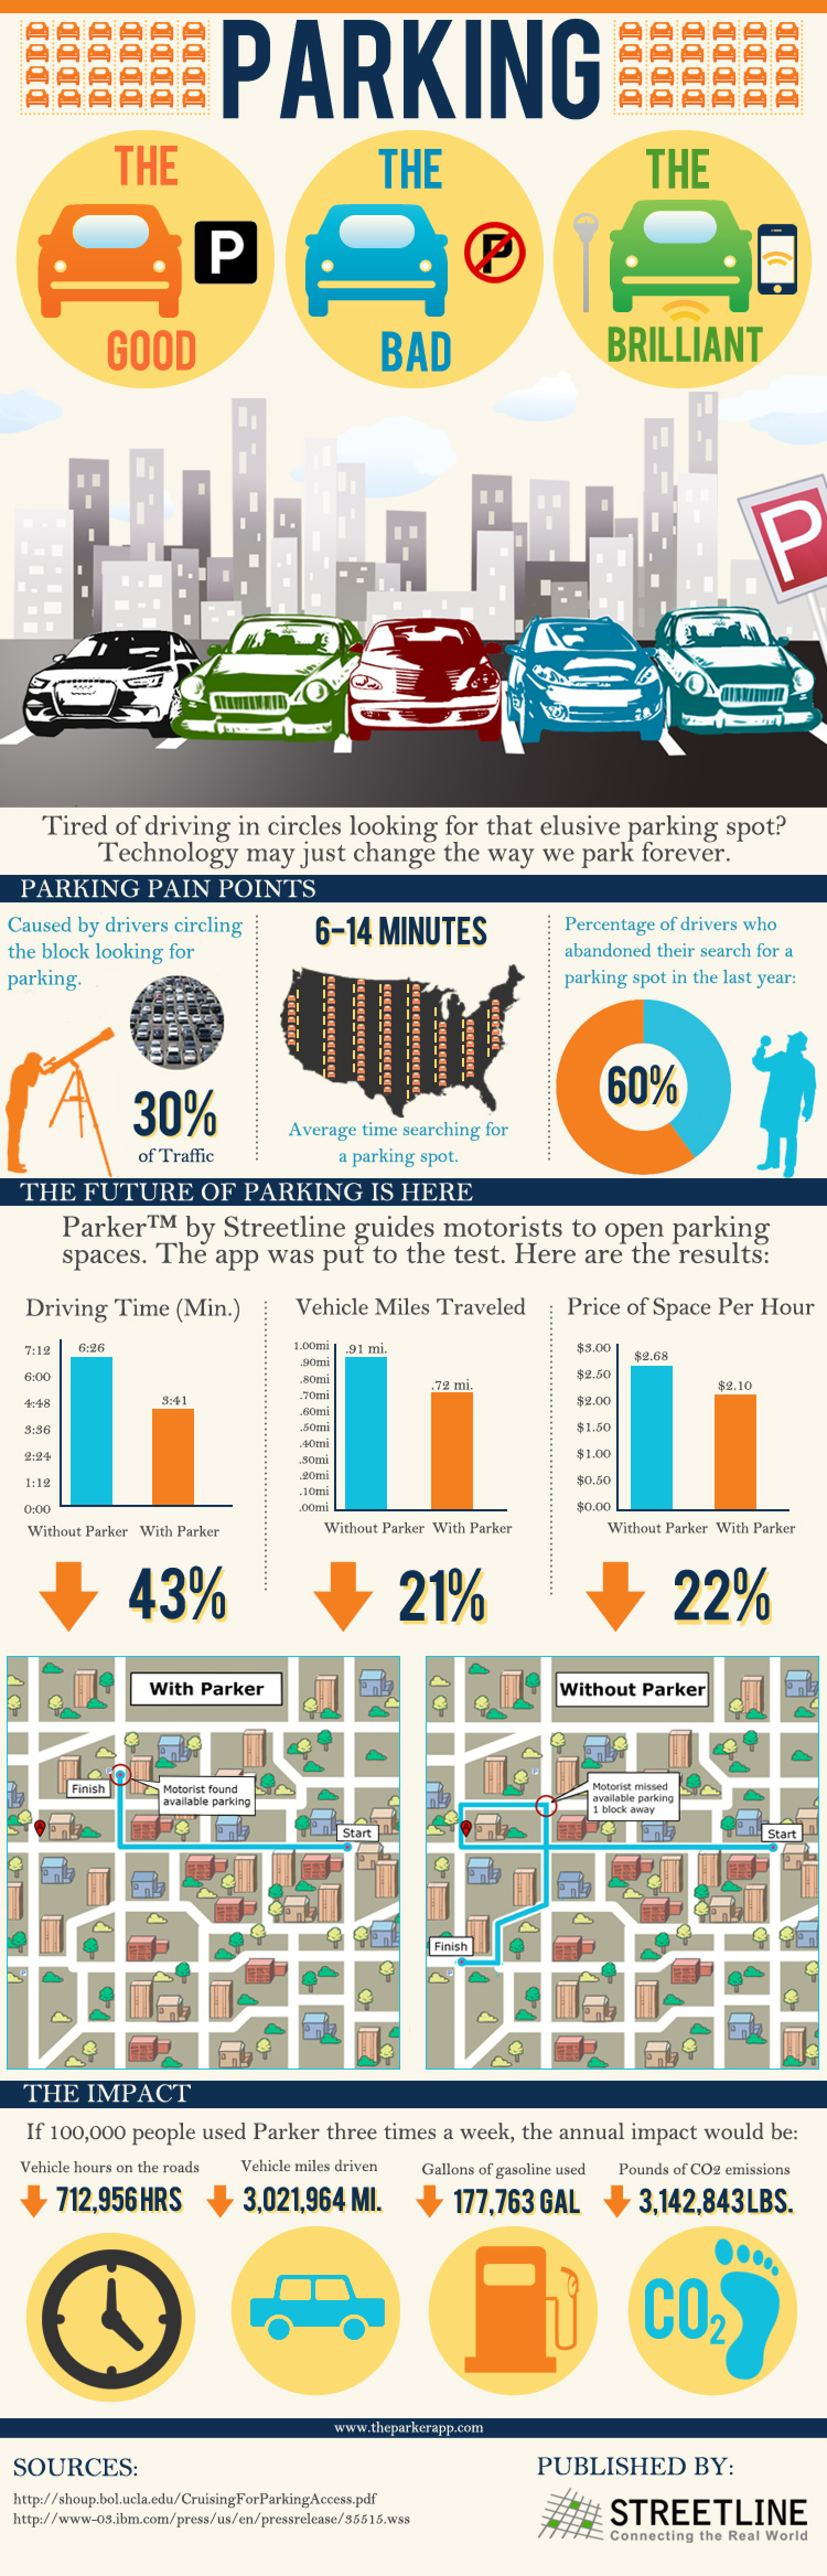 Parking: The Good, The Bad, The Brilliant Infographic